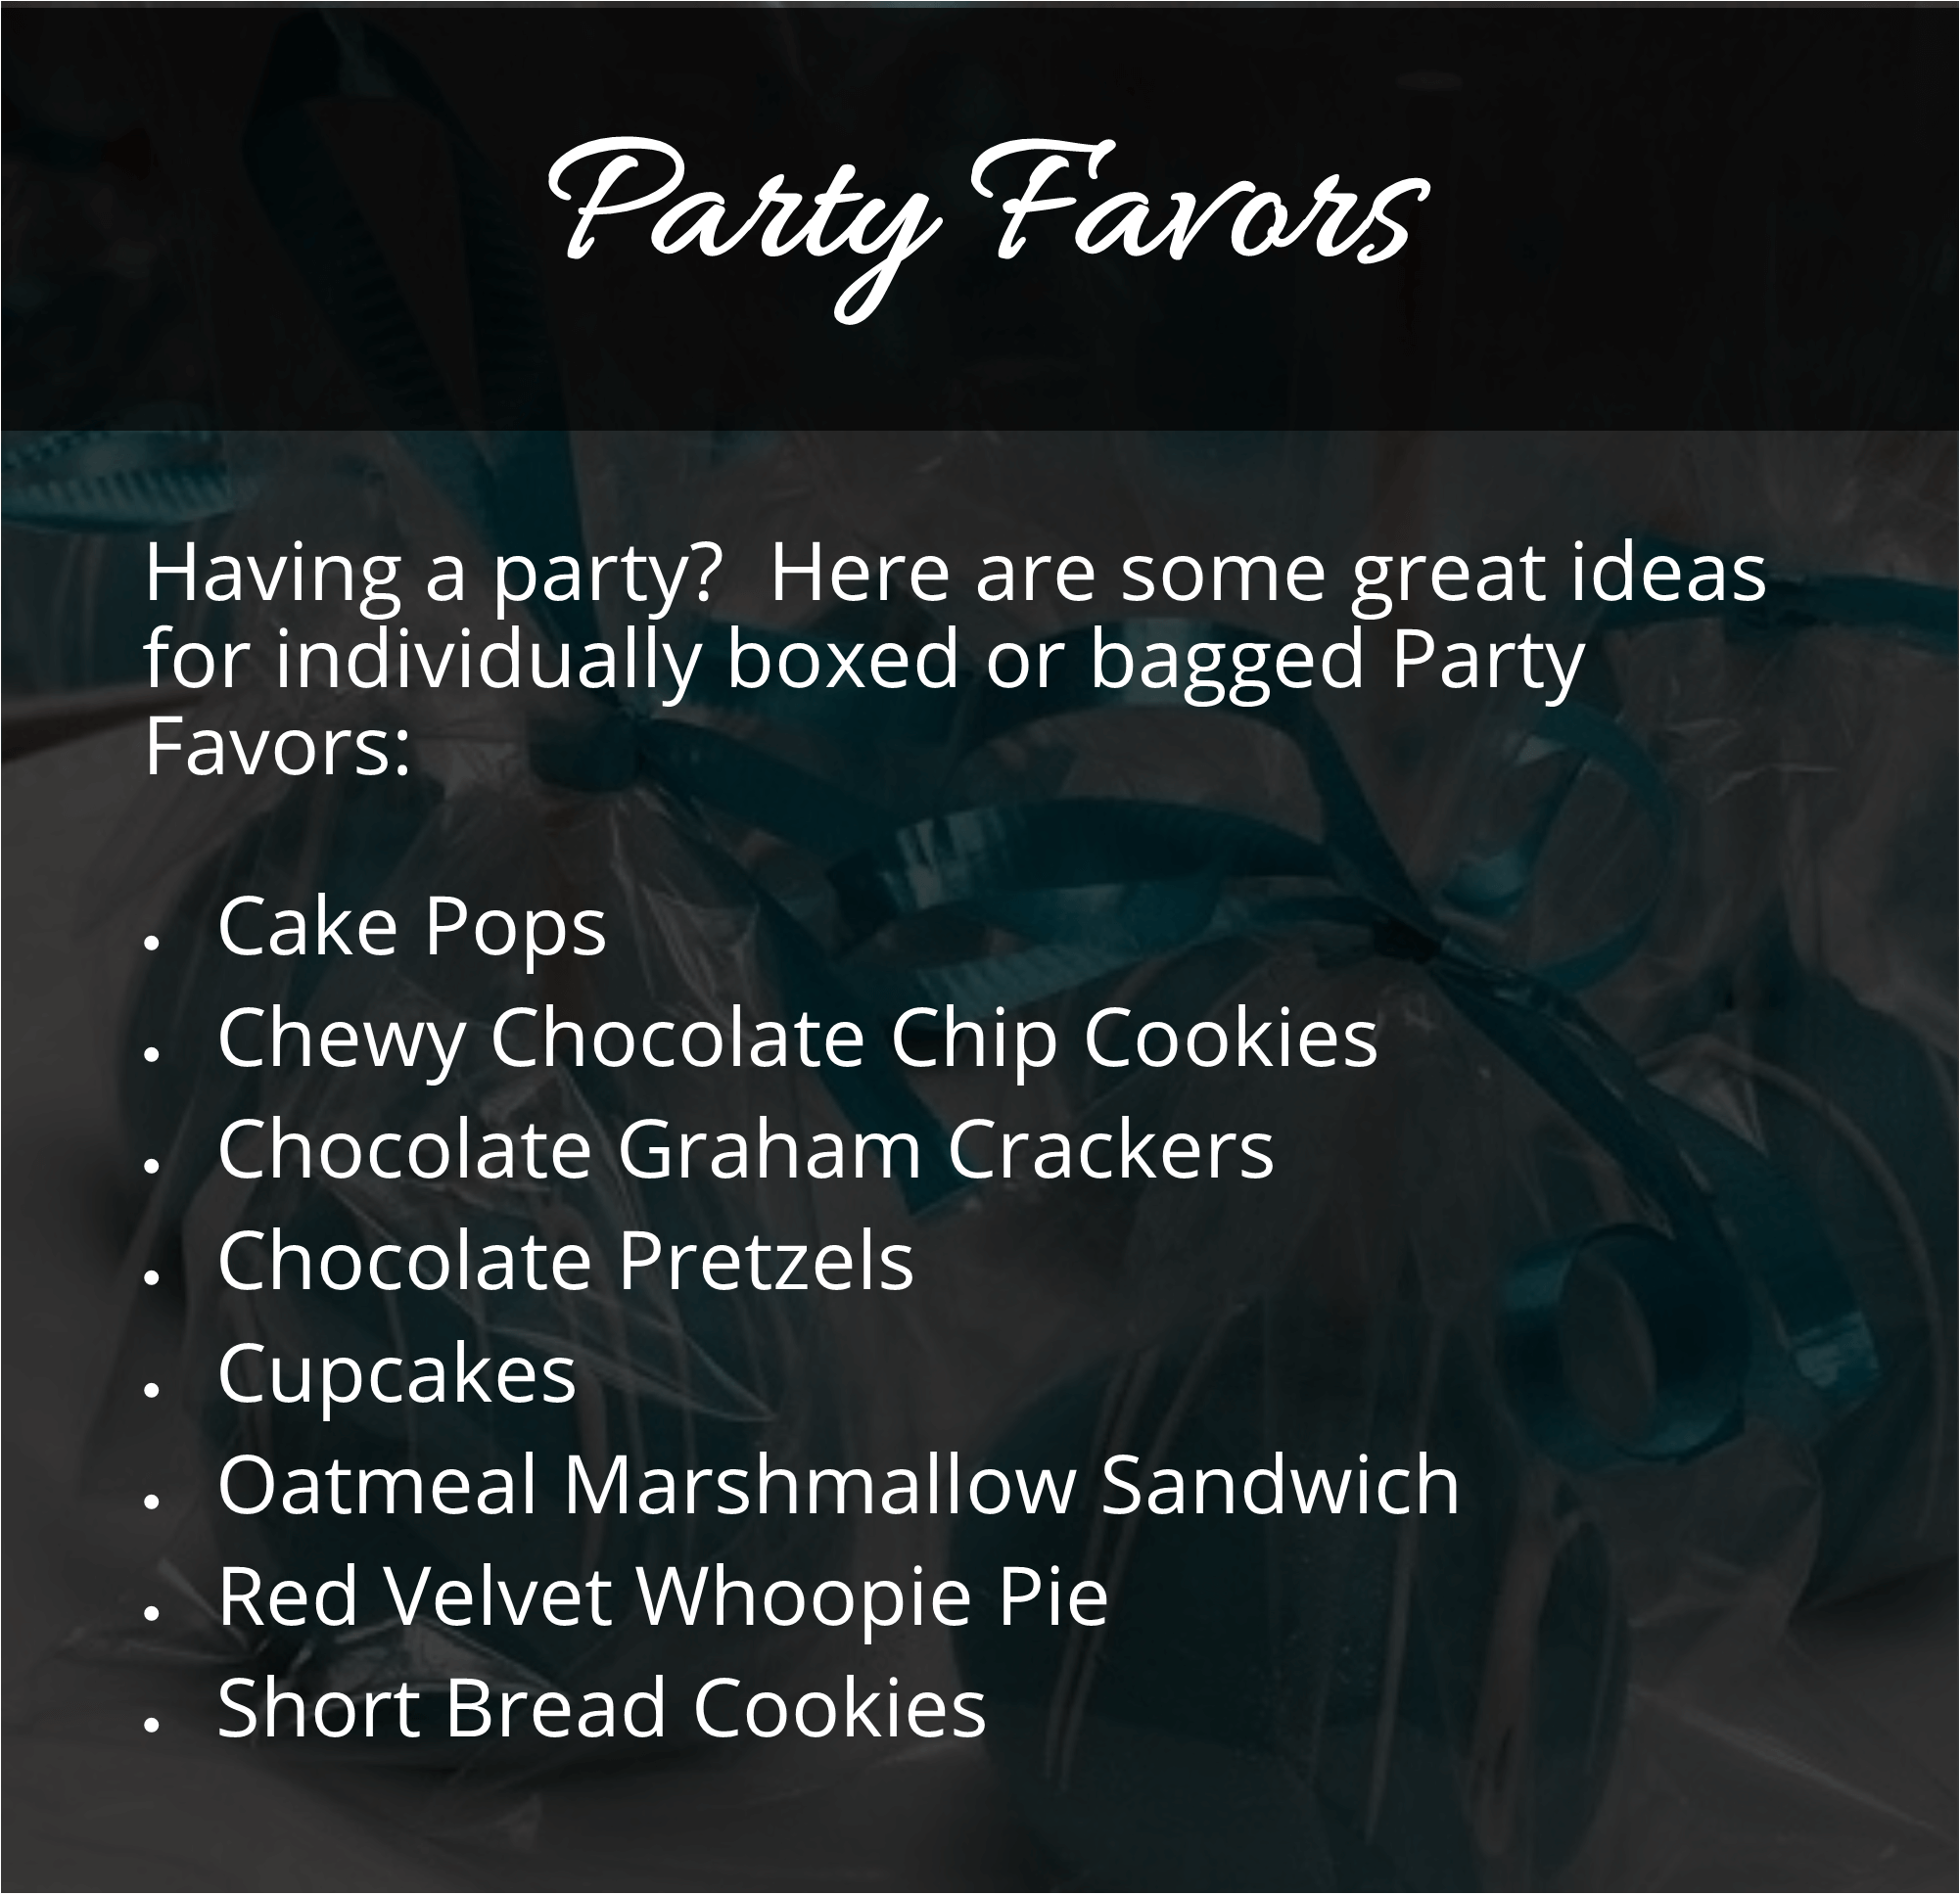 Catering_Menus - Party-Favors-text.png